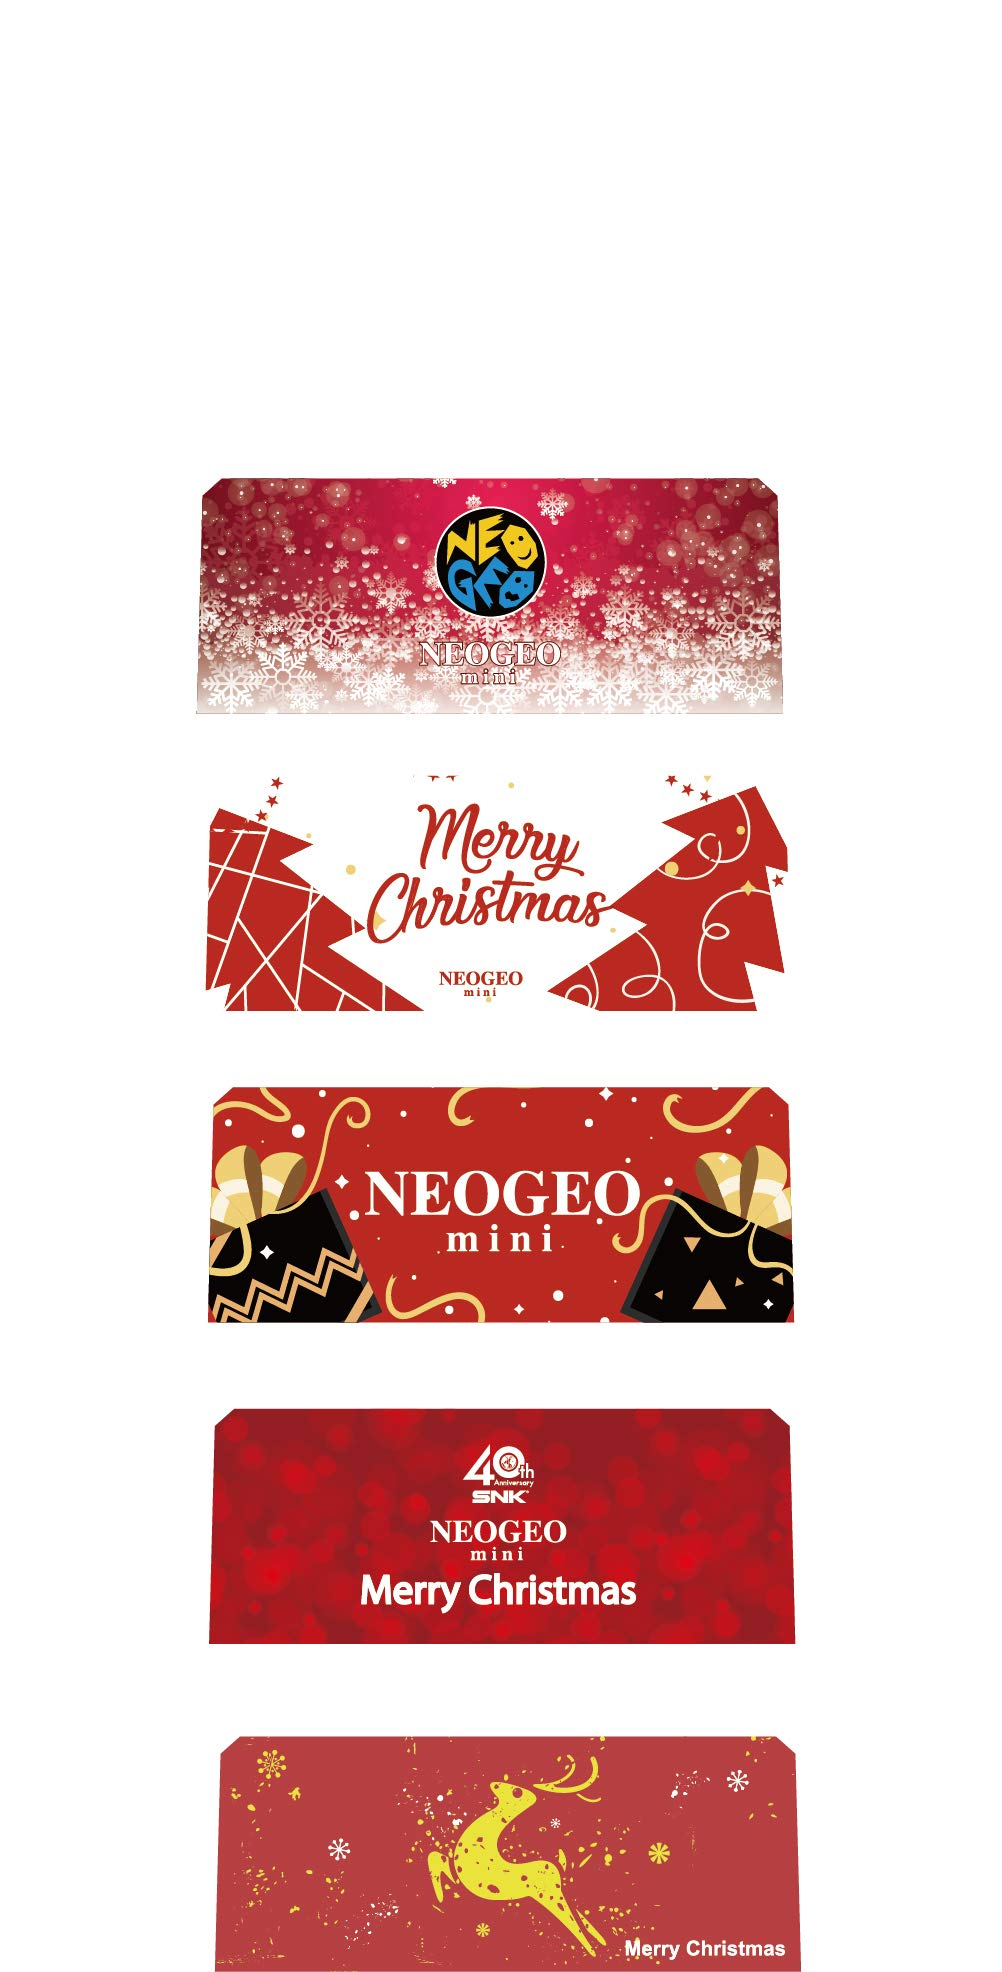 NEOGEO mini Christmas Limited Edition *(IN STOCK NOW! Ships USPS Priority Mail)* by SNK (Image #11)